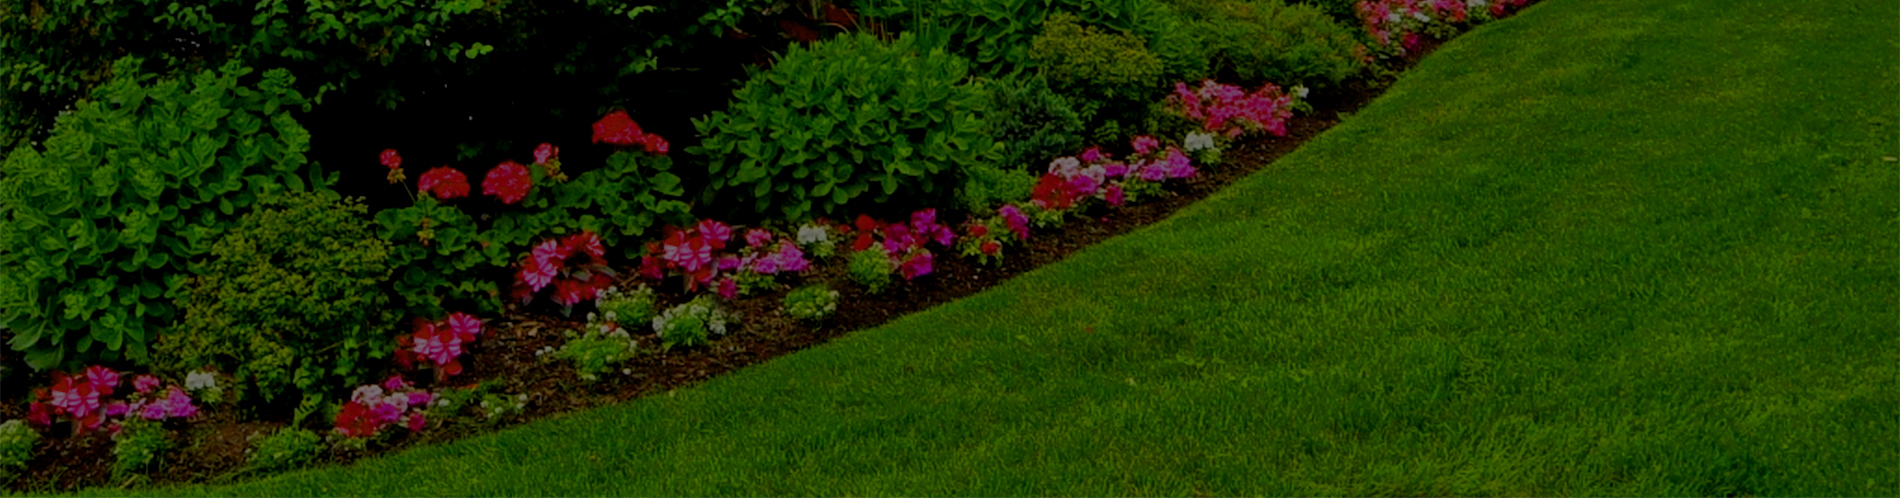 Soo Lawncare | Upper Peninsula Lawn Care |We are your Sault Ste. Marie landscaping & flower bed maintenance team. We provide an attractive, clean and healthy environment for which your landscaping flowers, bushes and shrubs can thrive in.